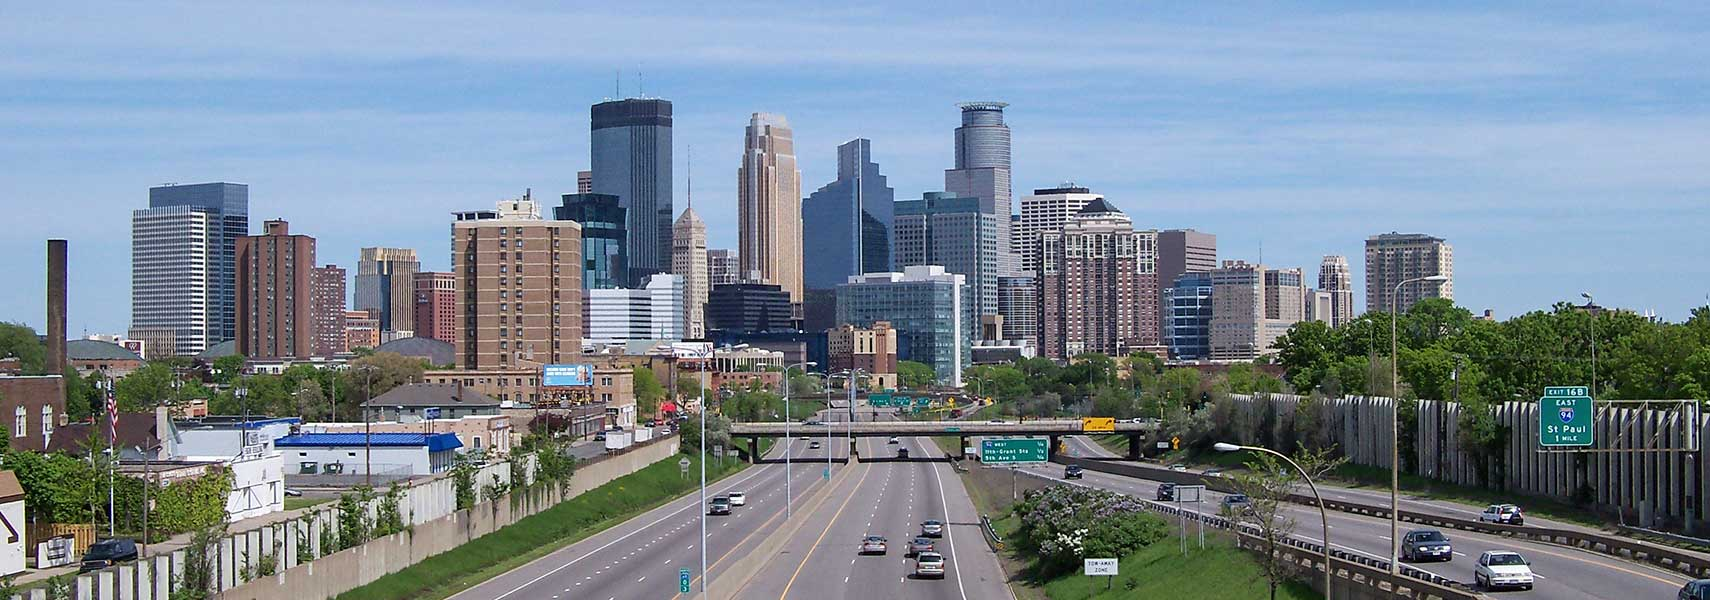 Google Map of the City of Minneapolis, Minnesota, USA ...